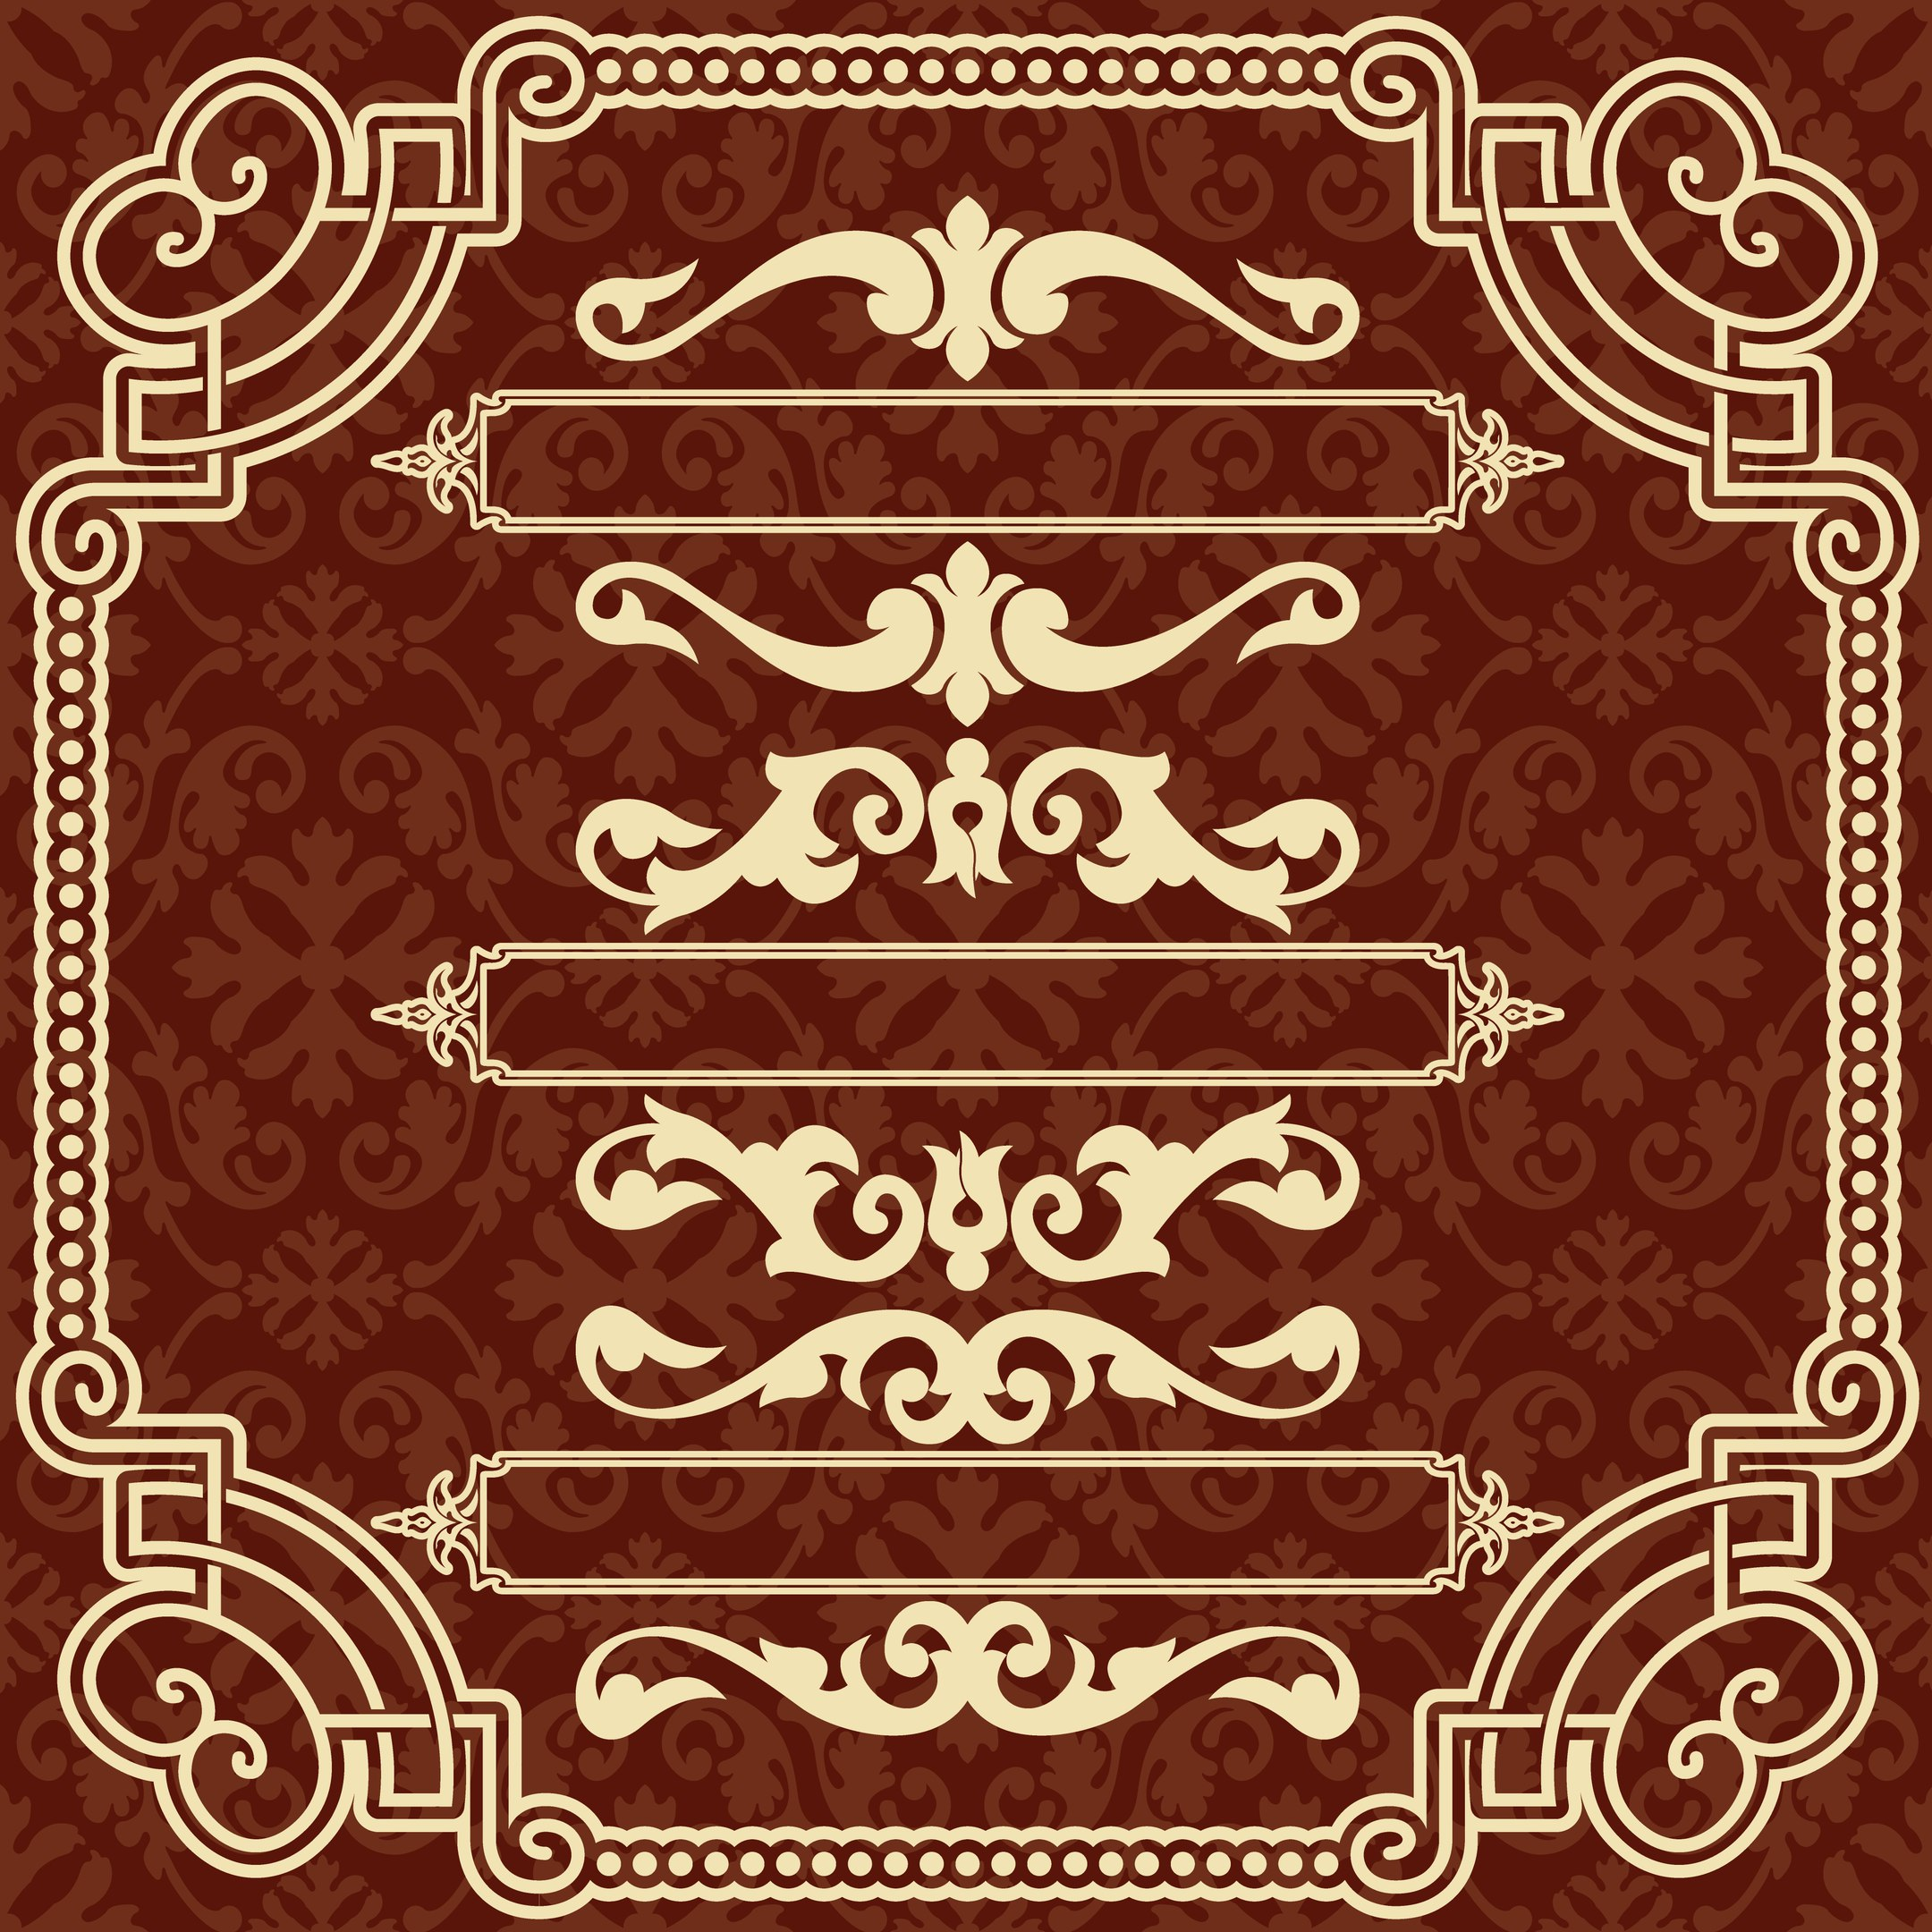 Square Frame With Ornamental Border Free Vector